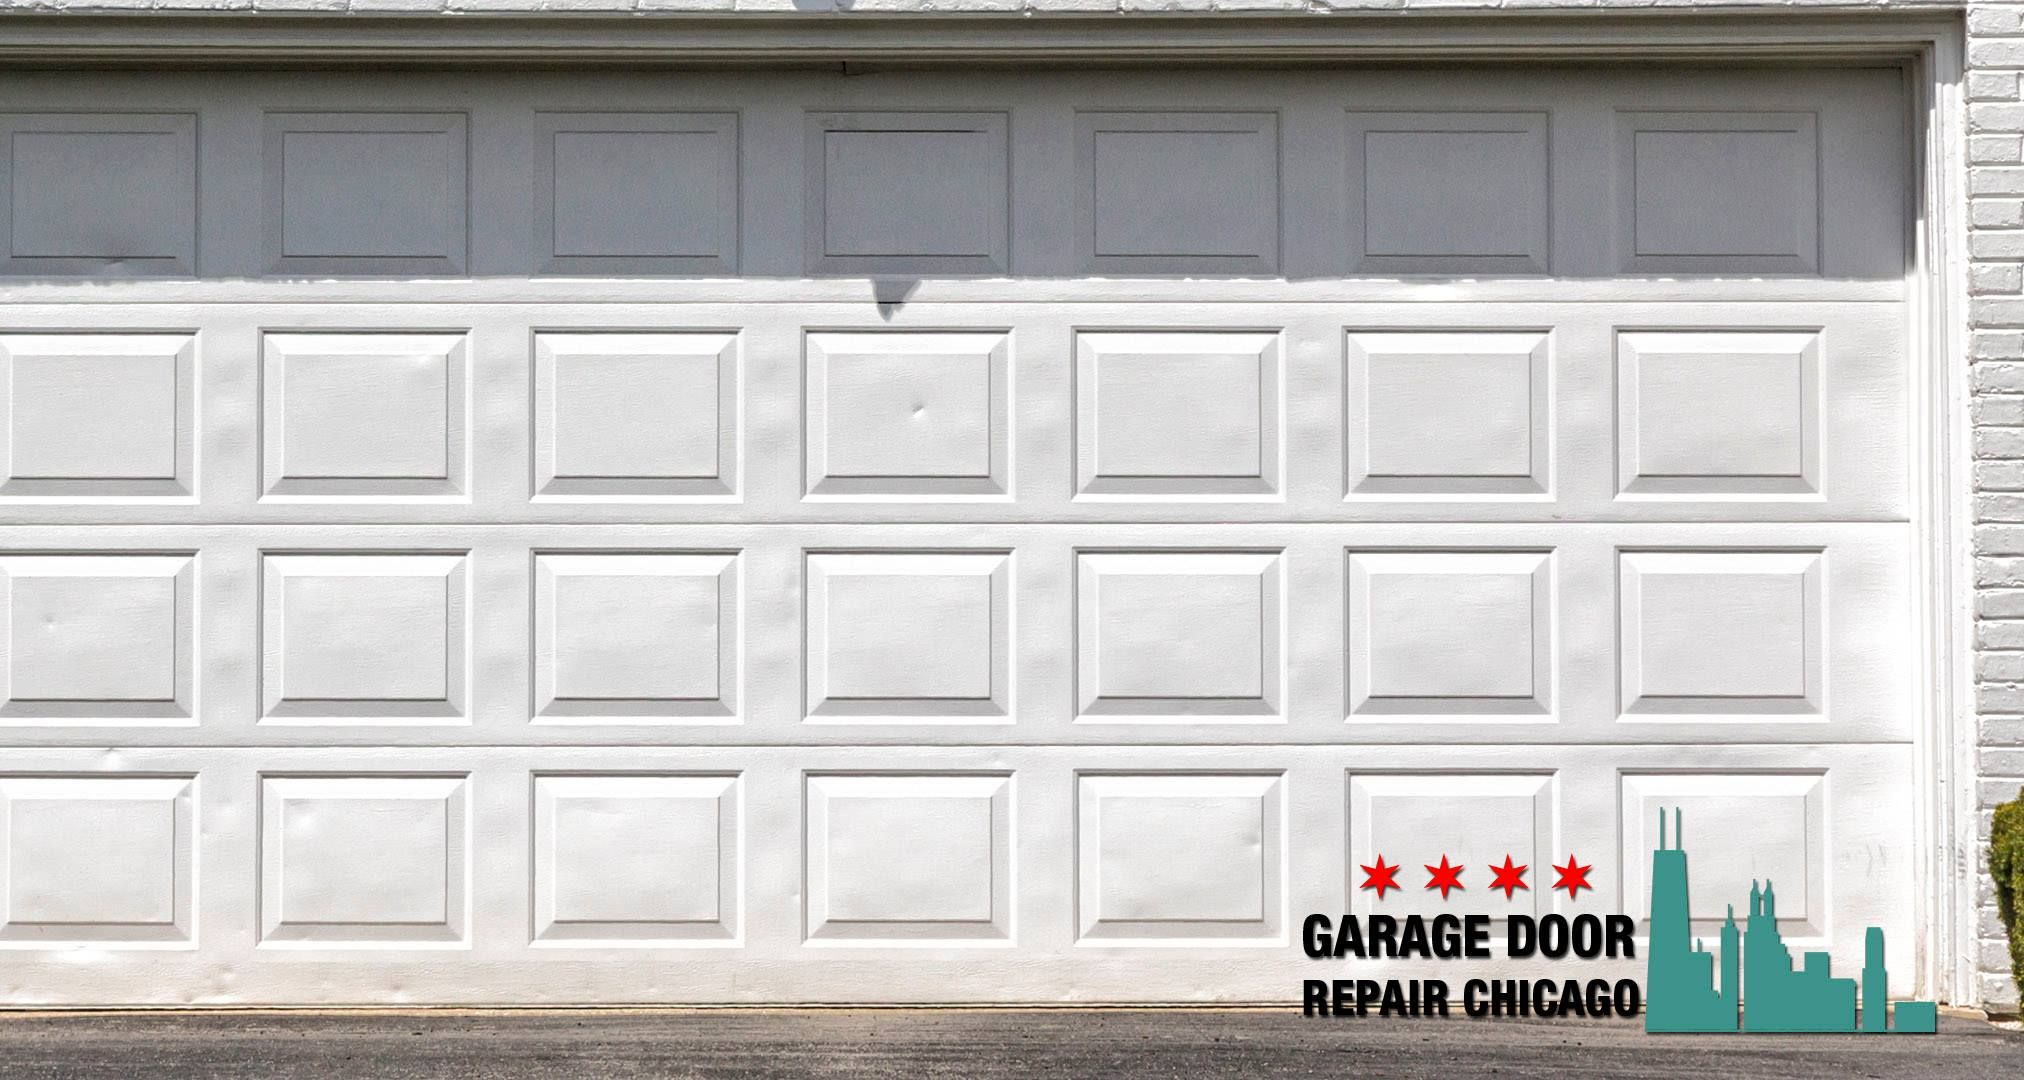 We Repair All Varieties Of Garage Door Issues Garagedoorrepair Garagespringrepair Chicagogaragedoorrepa Door Repair Garage Door Repair Service Garage Doors